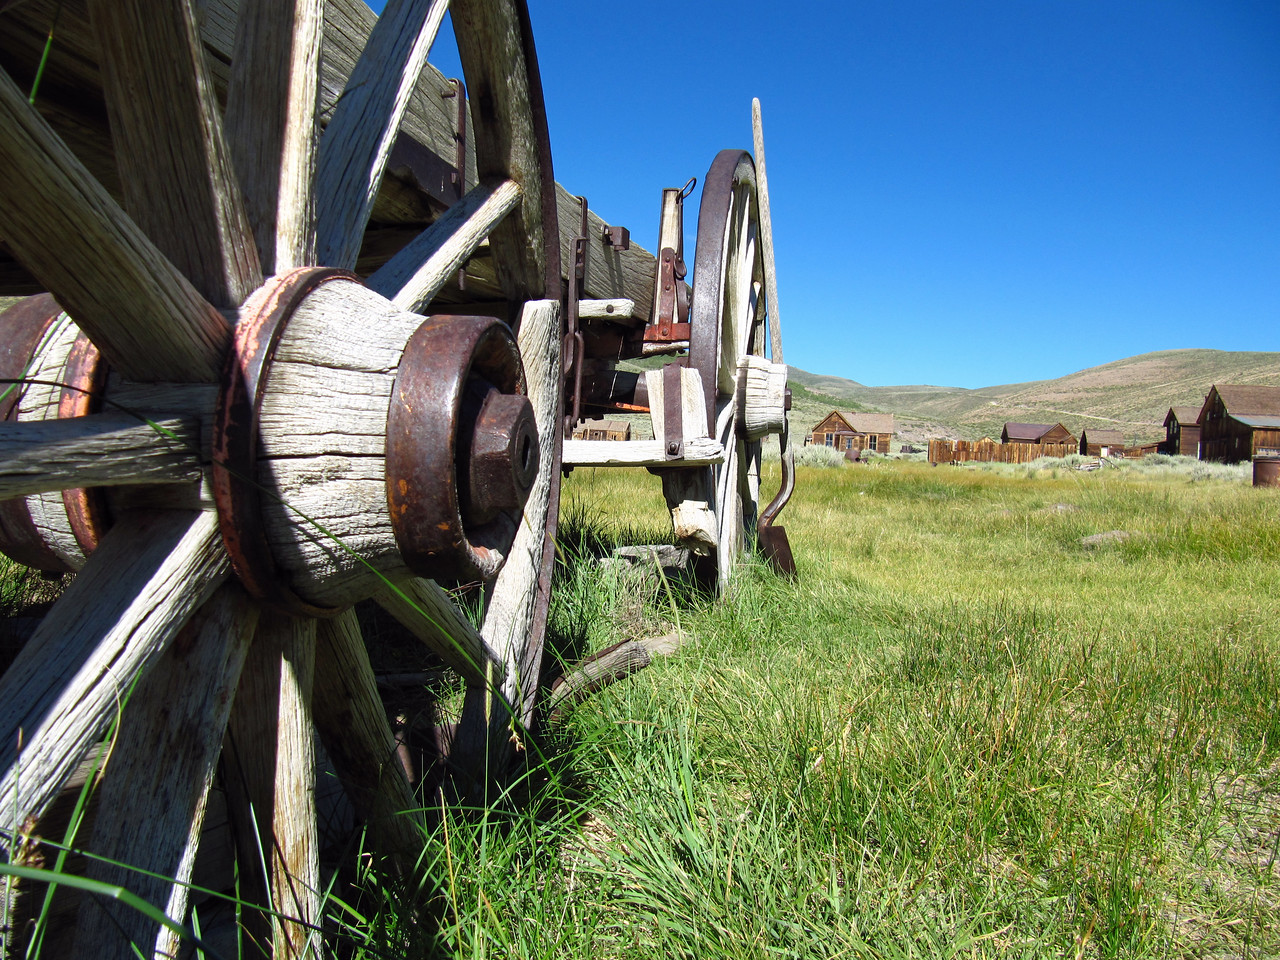 One of my favorite old wagons in the town of Bodie.